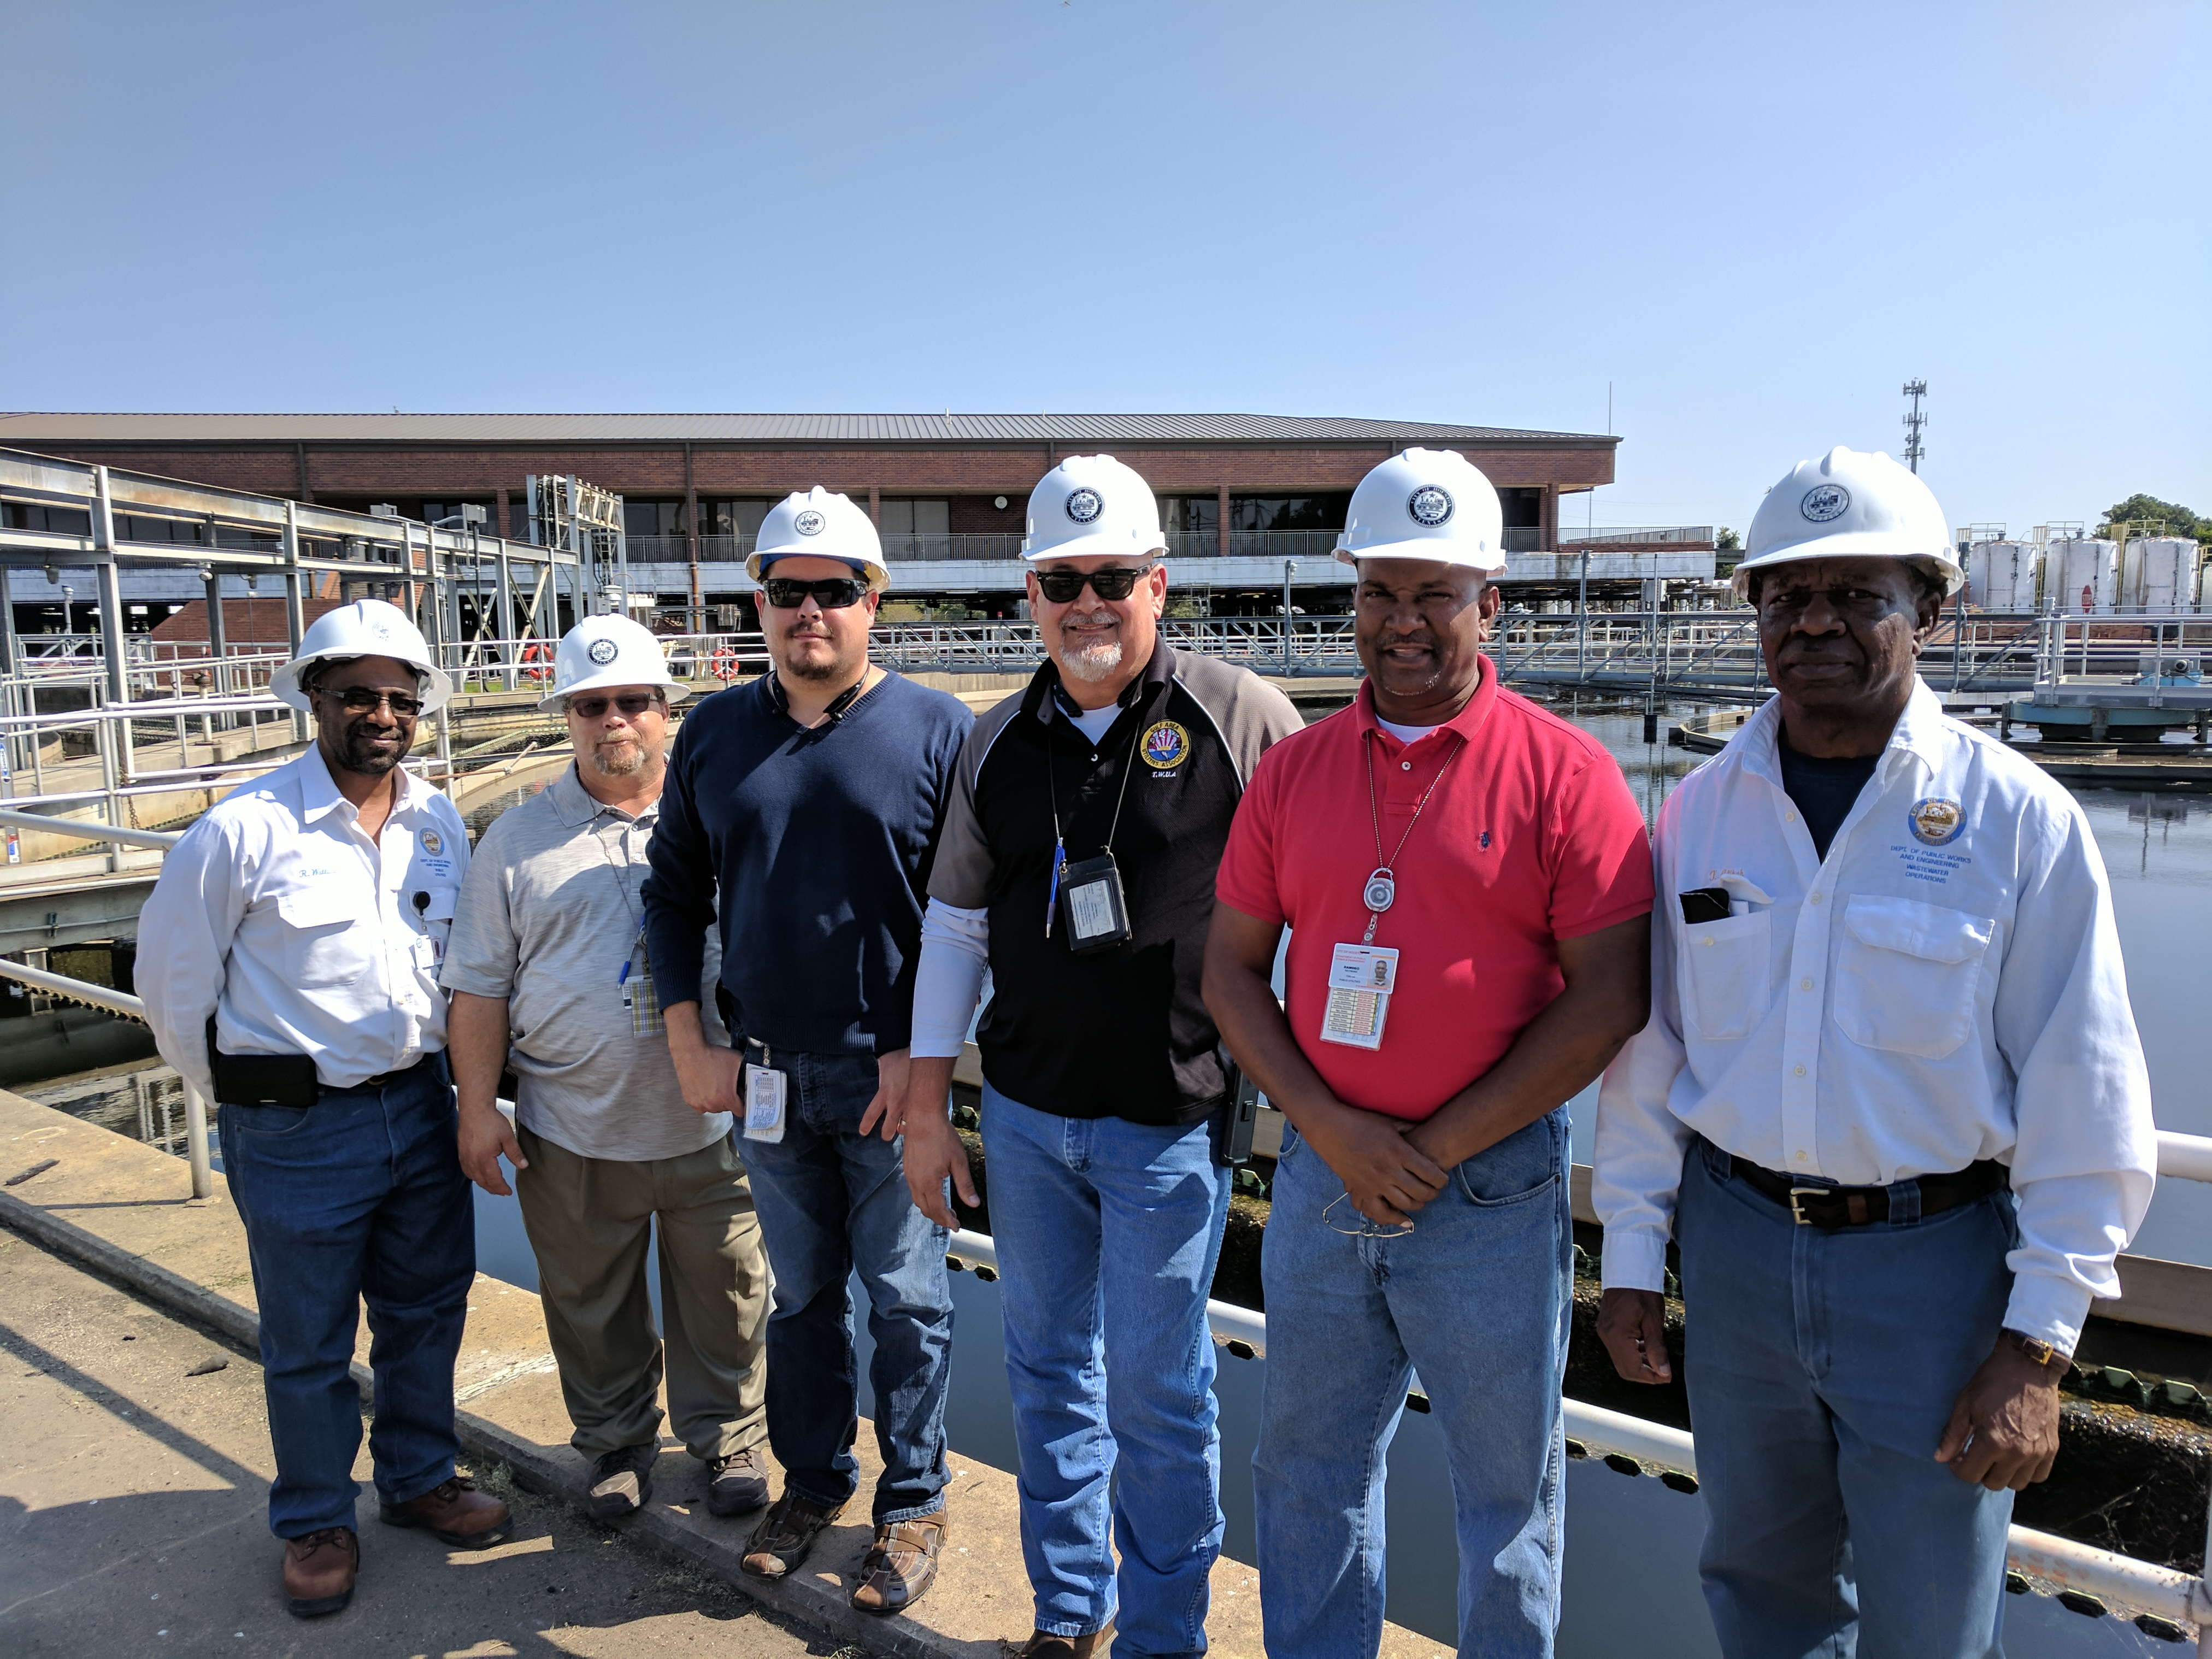 Operators and managers at the 69th Street Wastewater Treatment Plant in Houston kept operations running during Hurricane Harvey.